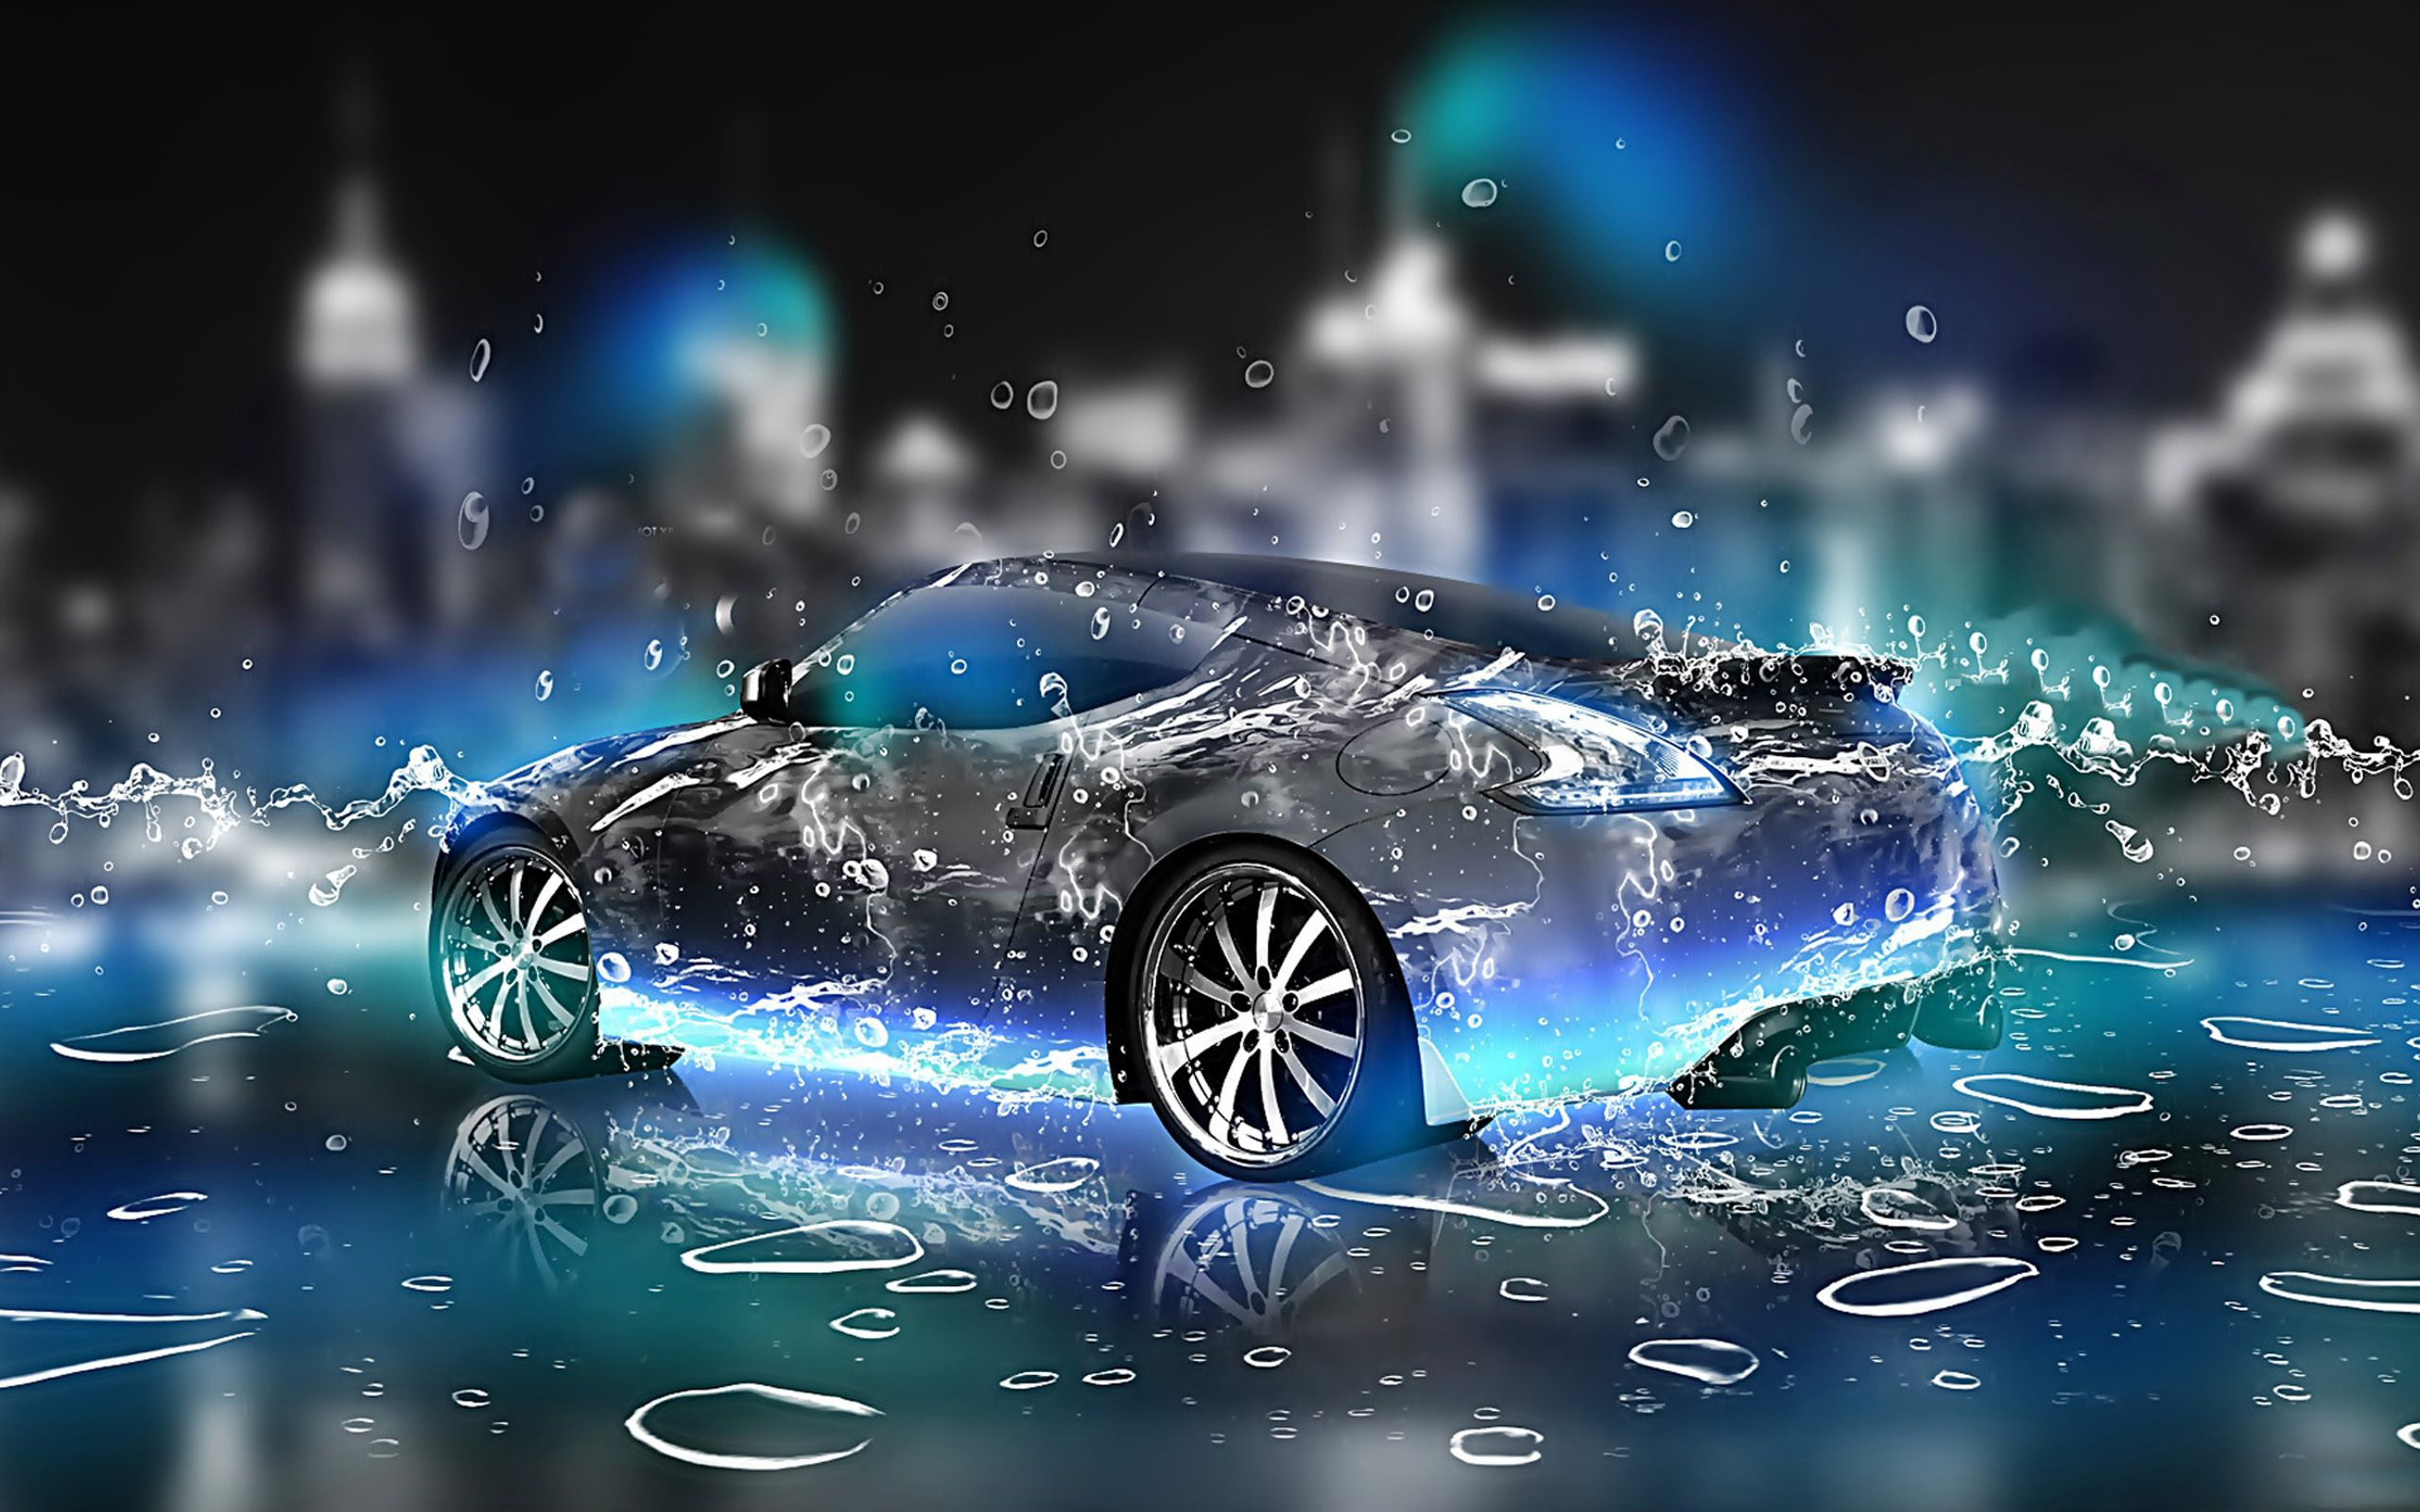 3d car hd pictures widescreen hd hq latest water effect graphics